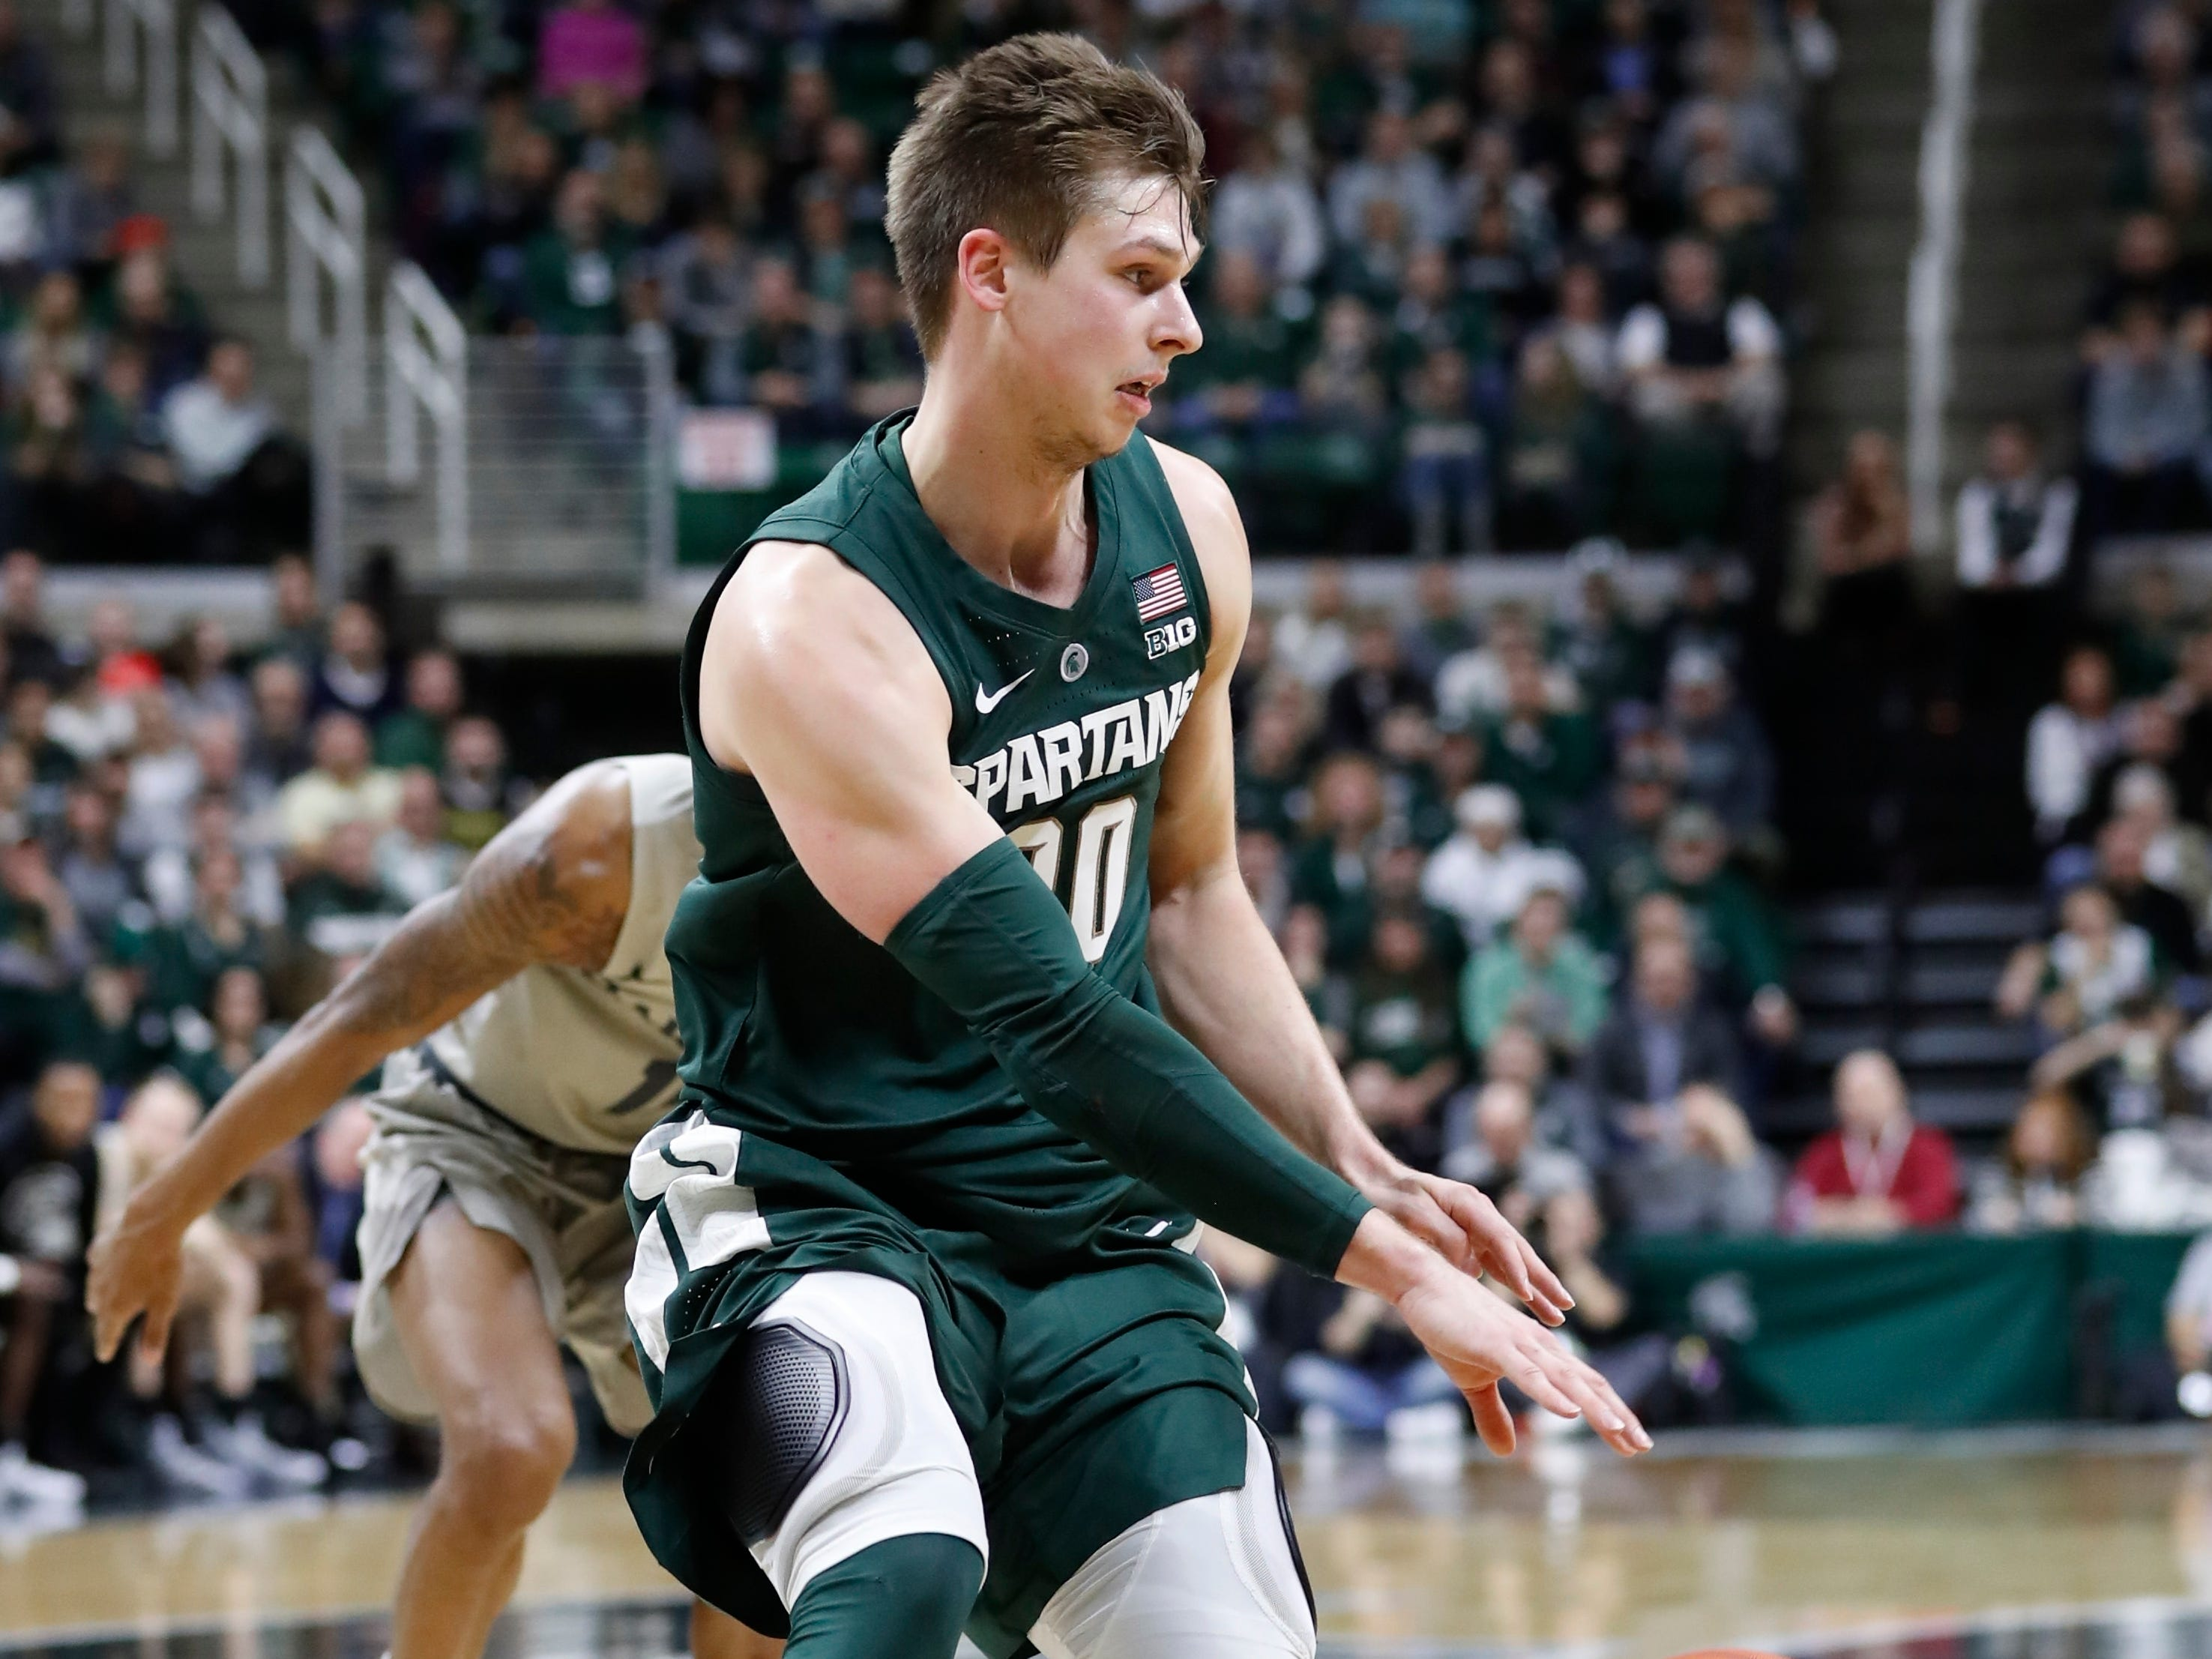 Michigan State guard Matt McQuaid controls the ball during the second half of an NCAA college basketball game against Oakland , Friday, Dec. 21, 2018, in East Lansing, Mich.